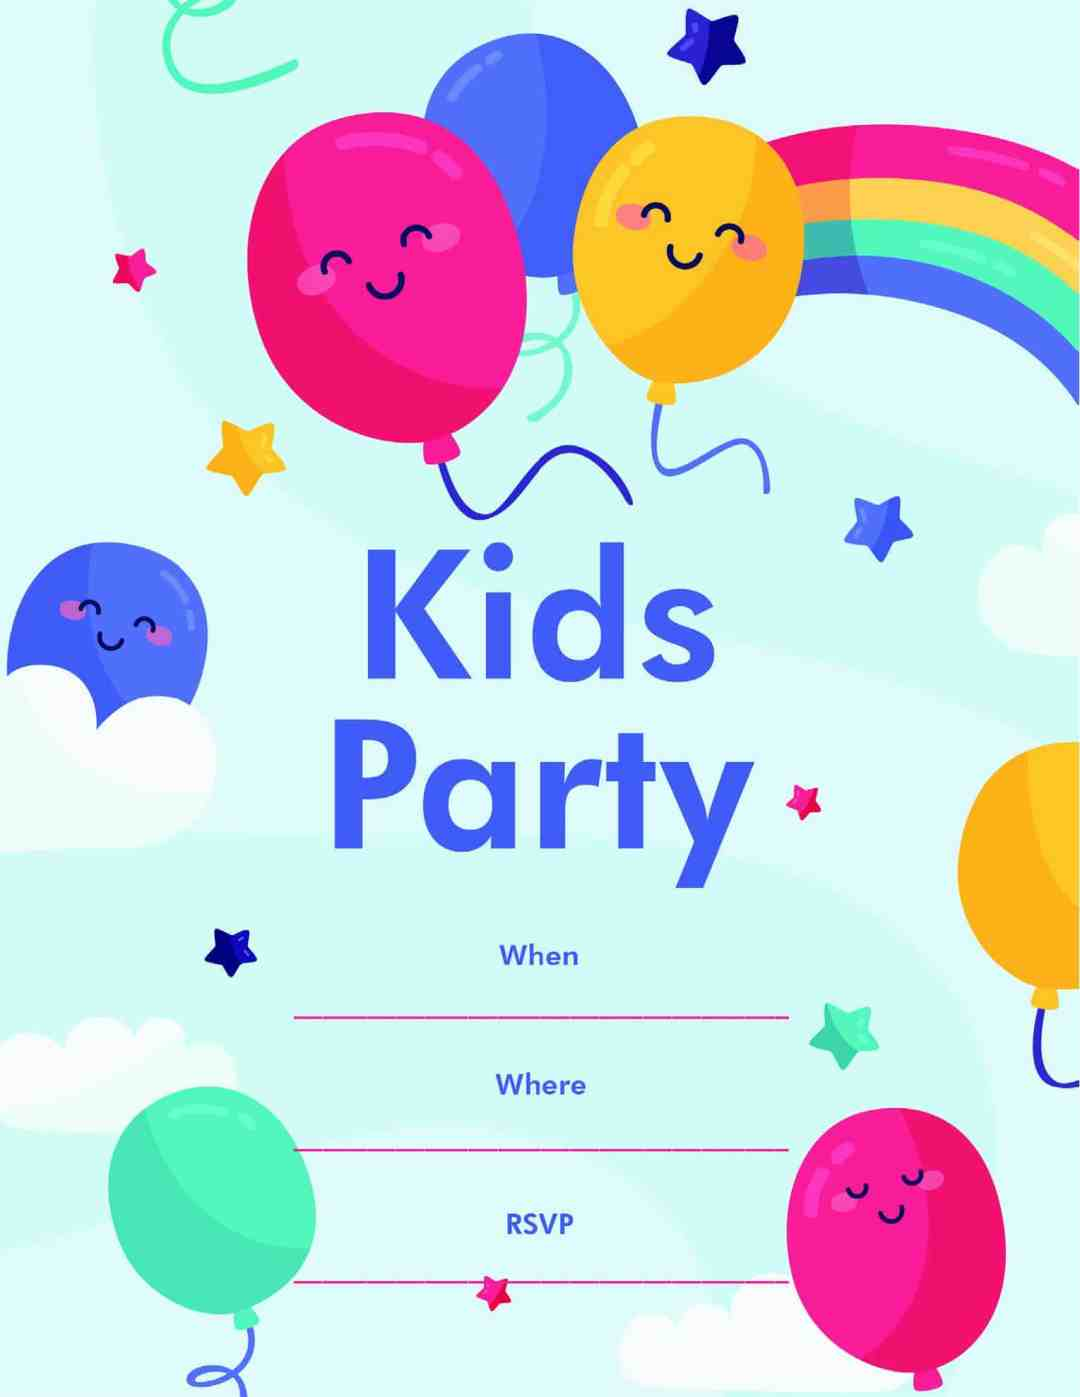 Kids Party - Rainbow Balloons Stars Clouds - All Free Invitation